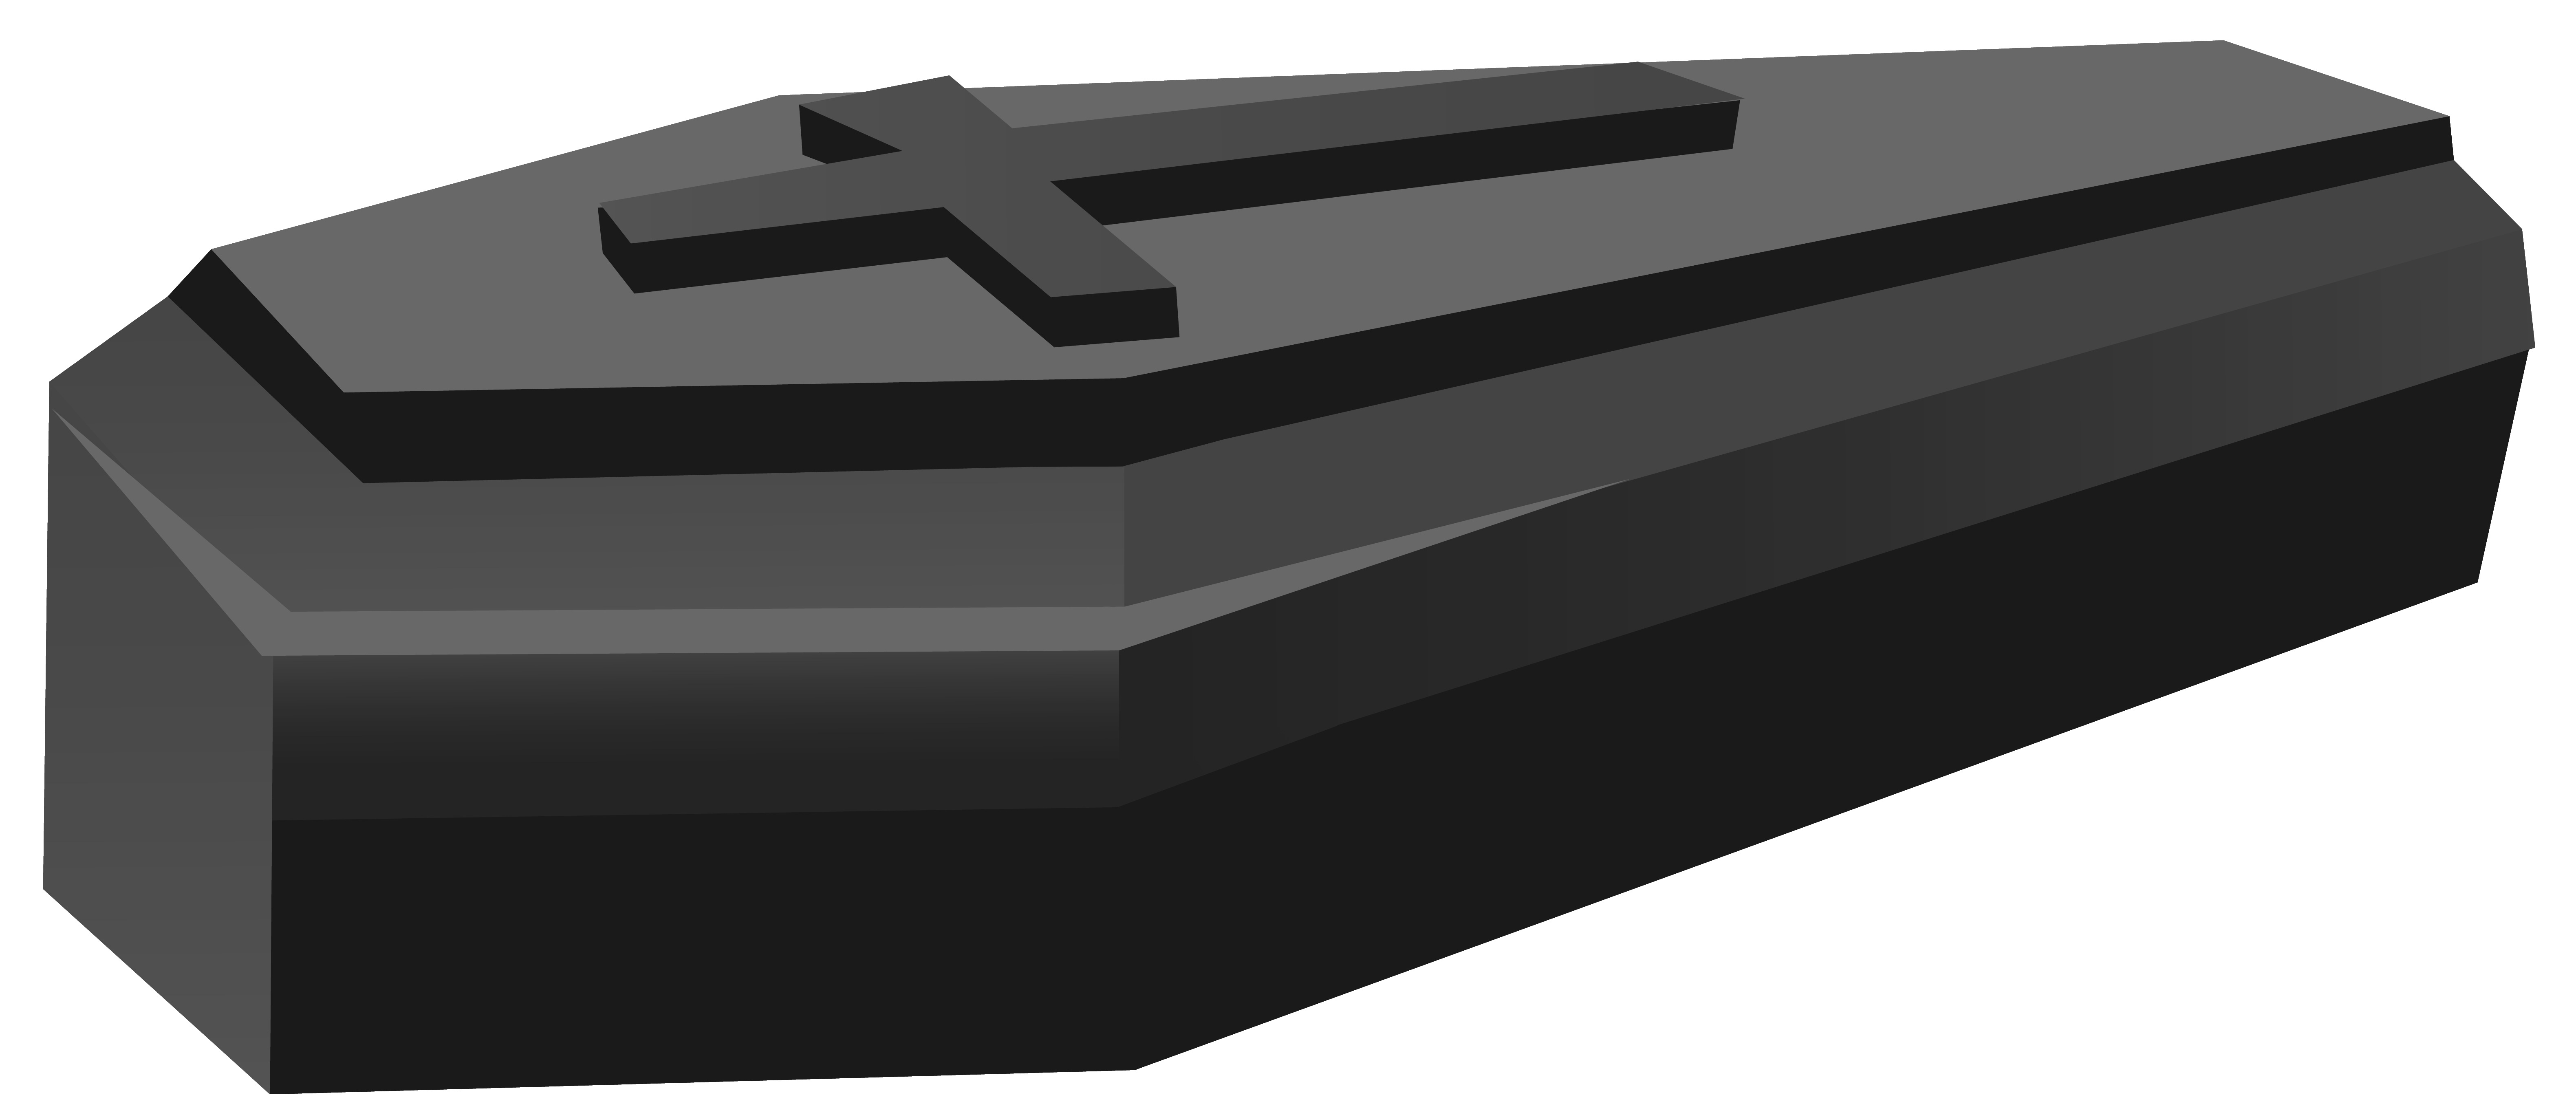 Coffin clipart. Black png image gallery